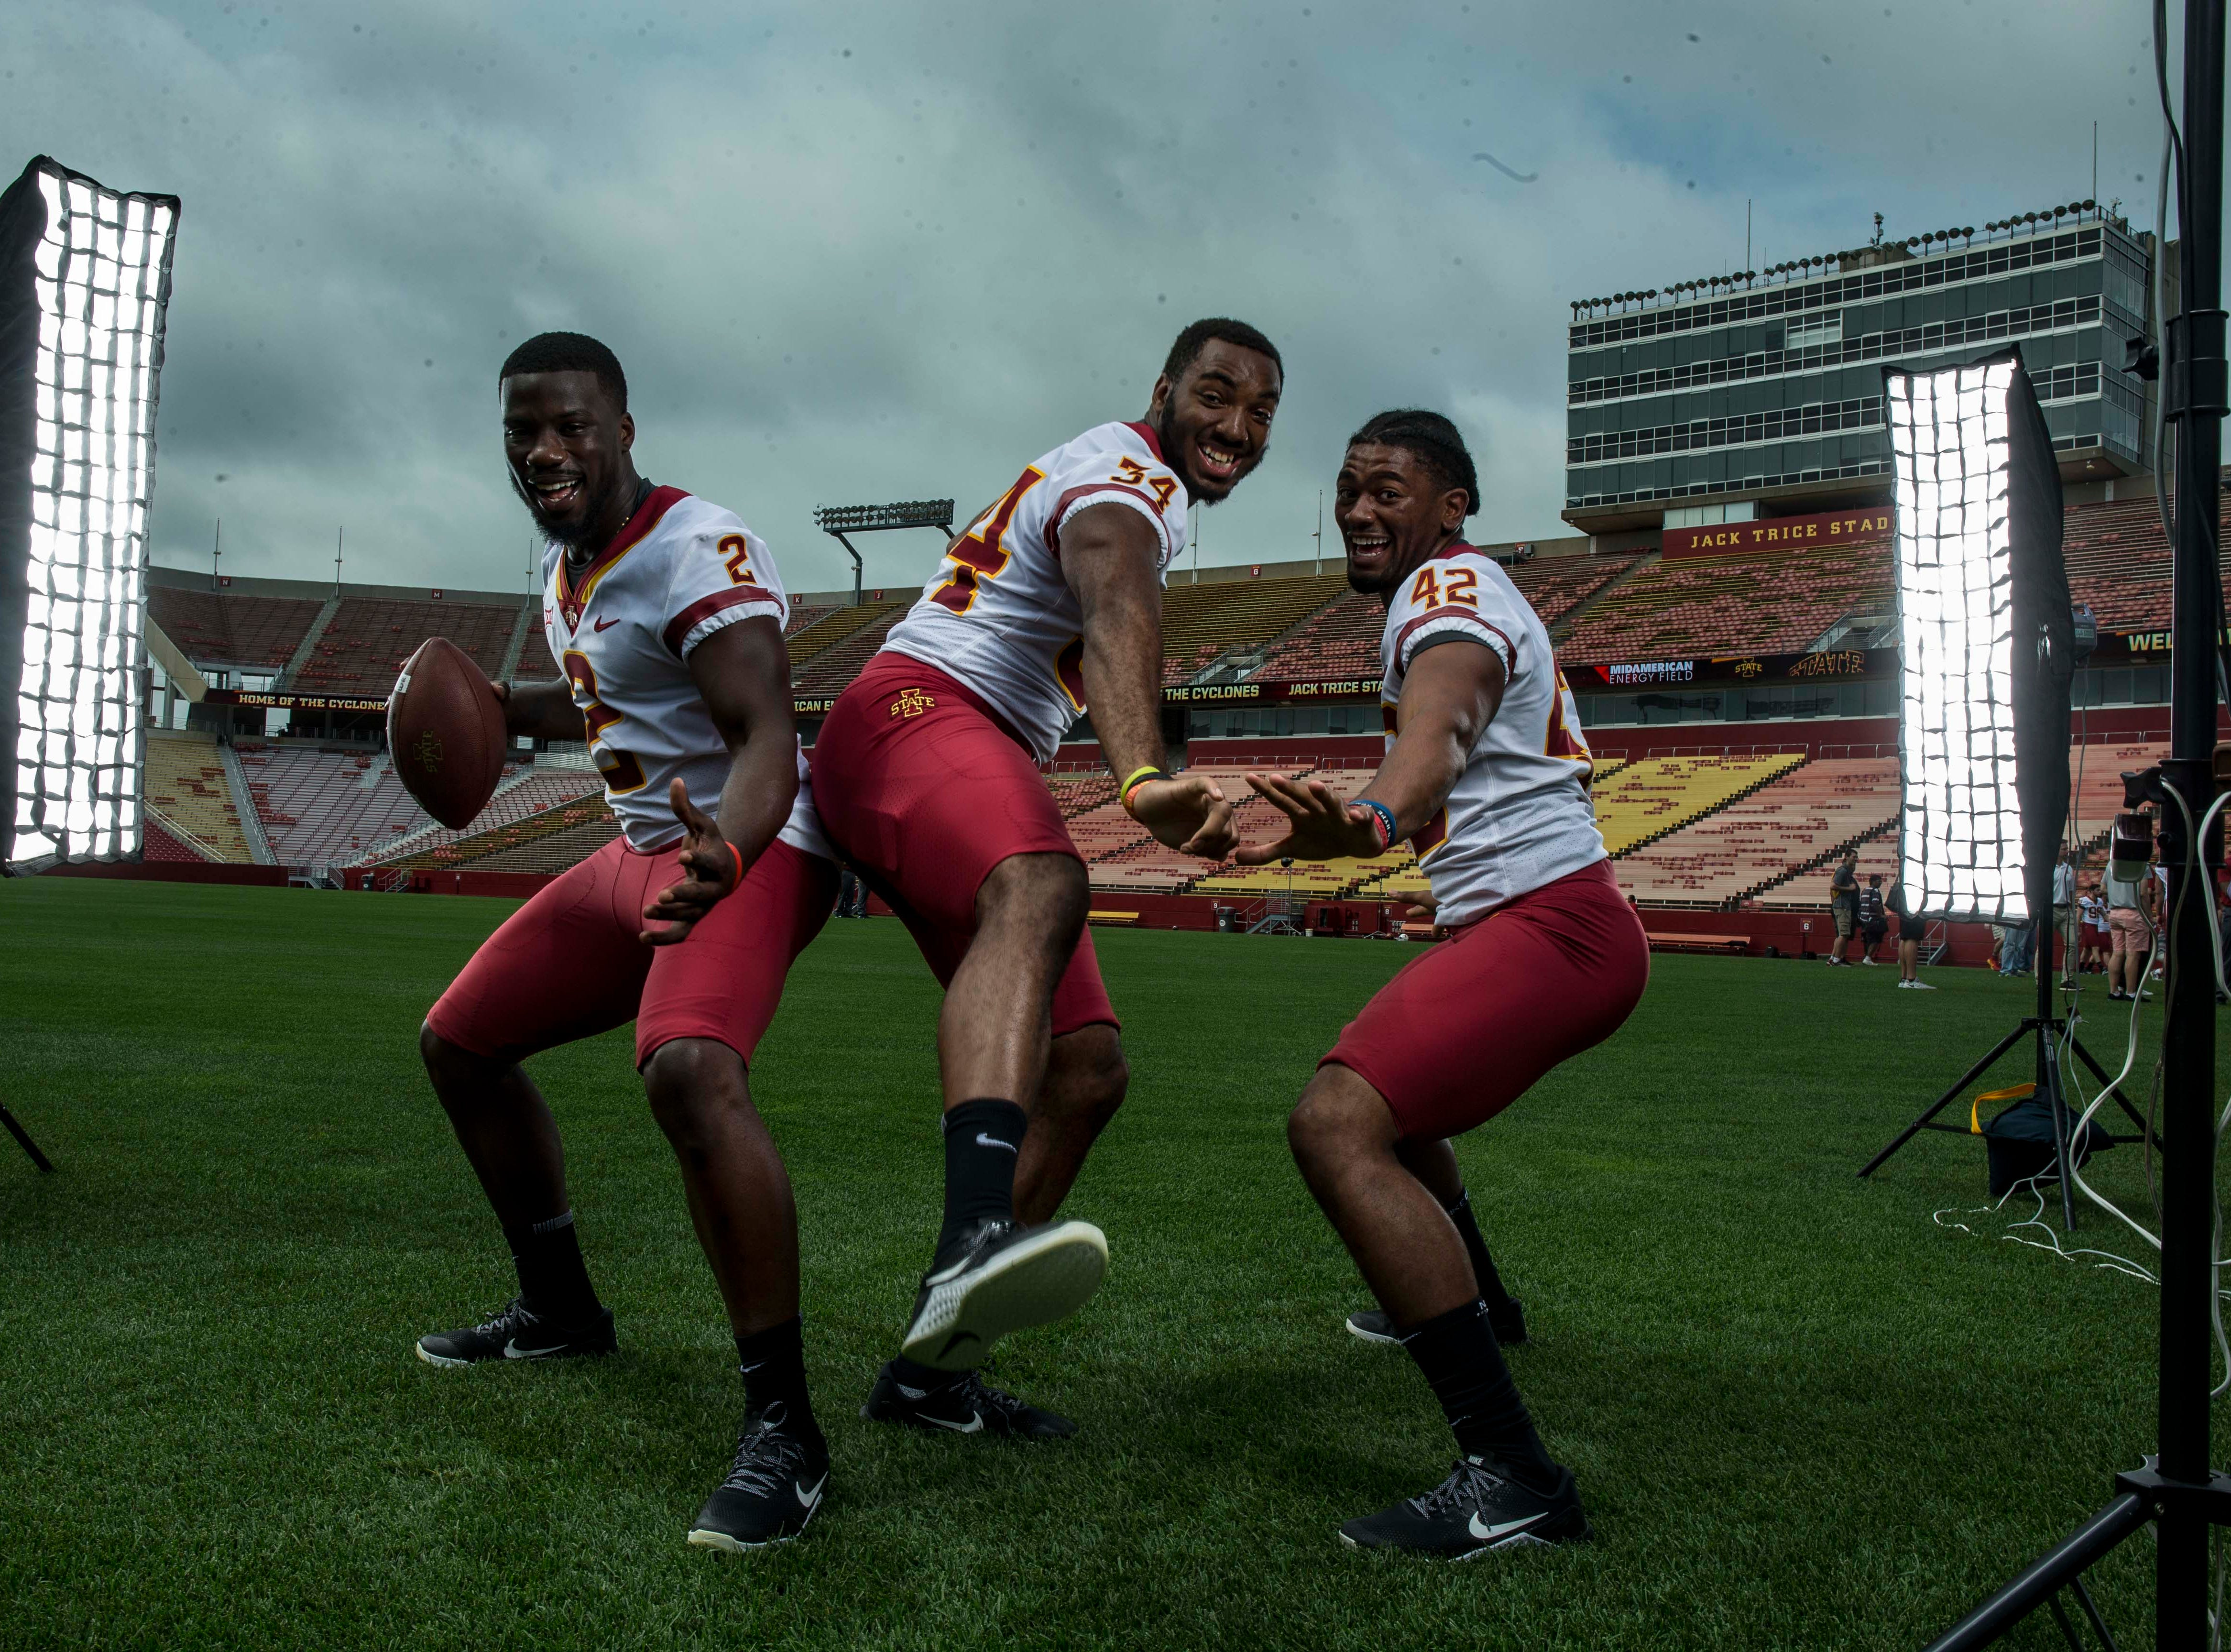 Willie Harvey senior linebacker, (2), O'Rien Vance freshman linebacker, (34), and Marcel Spears Jr. junior linebacker, (42), during Iowa State University's football media day Tuesday, Aug. 7, 2018,, in Ames, Iowa.